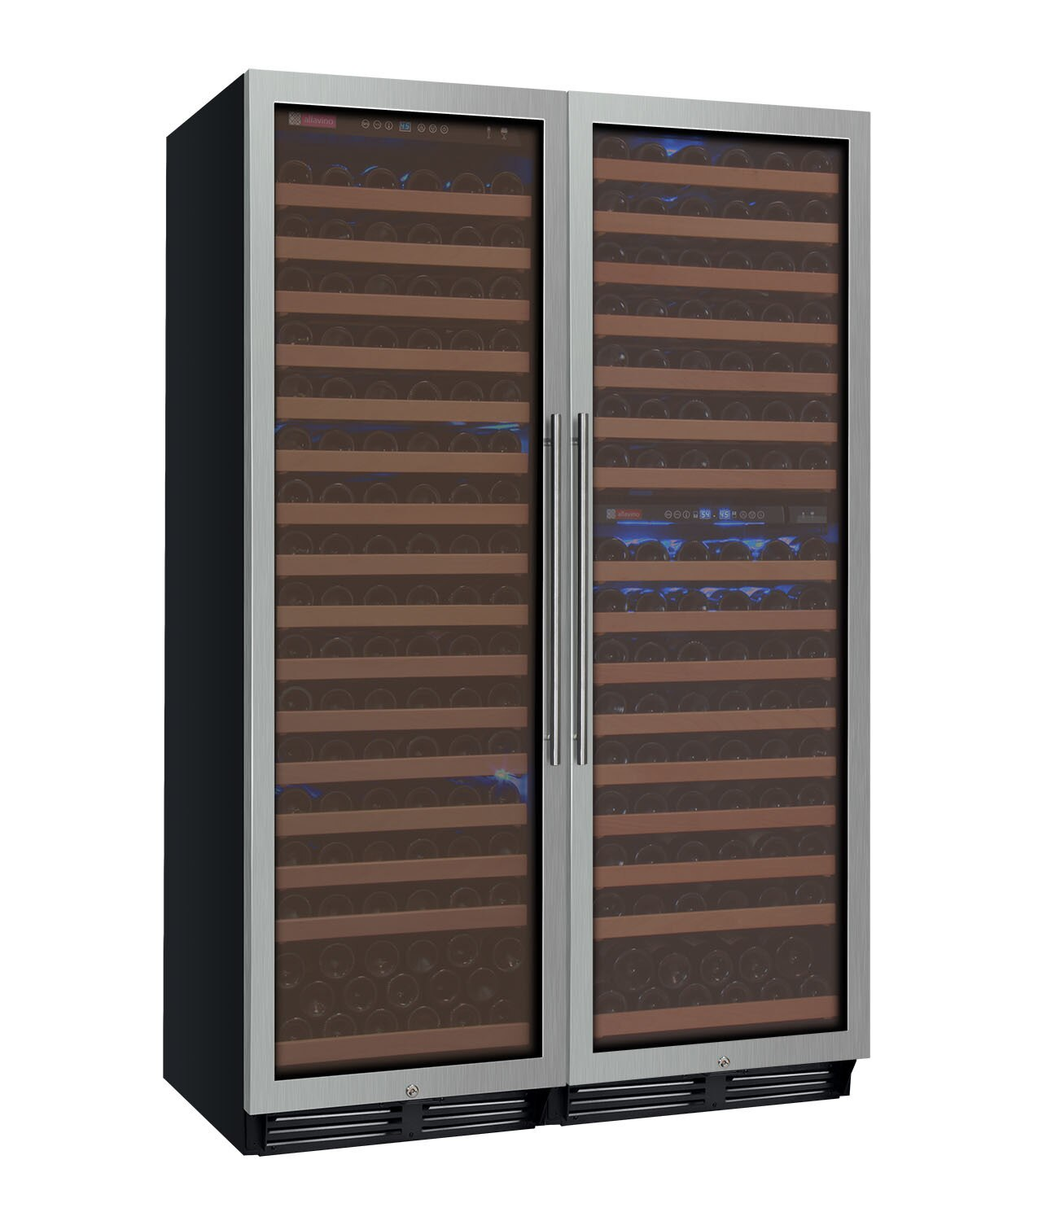 Allavino Flexcount 3Z-YHWR7274-SW 346 Bottle Three-Zone Wine Cooler with Stainless Steel Doors